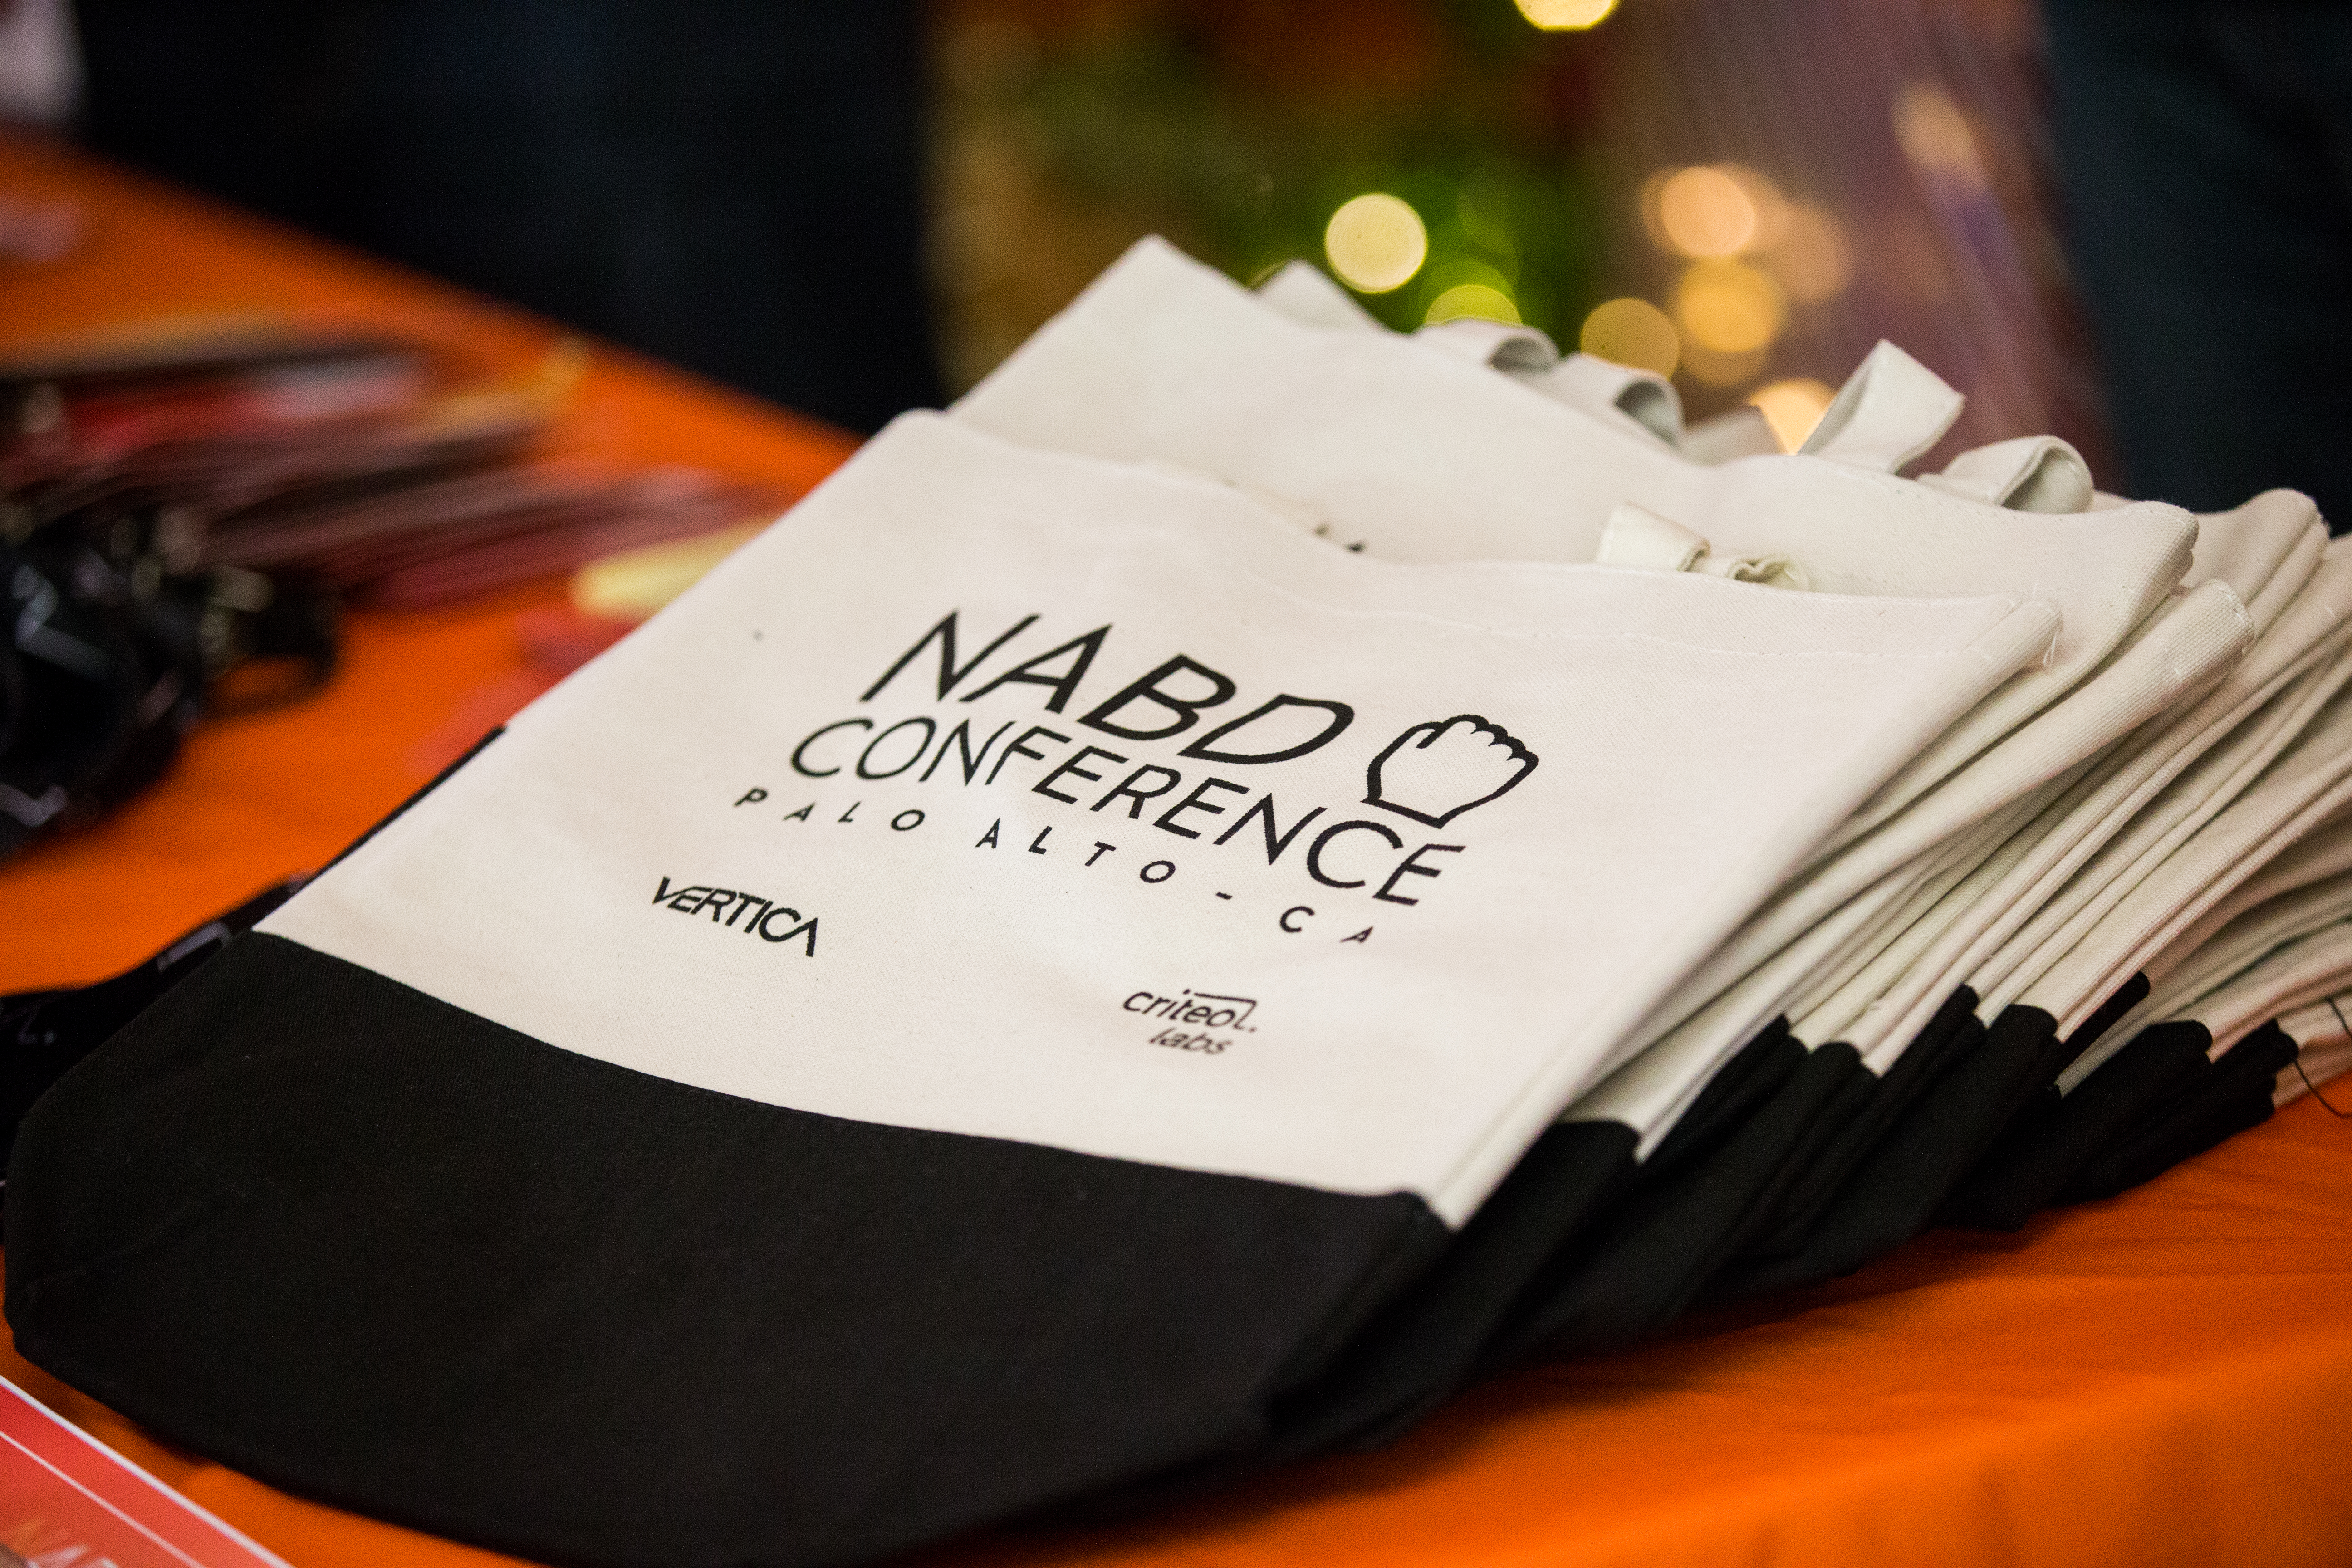 NABDConf Palo Alto: videos from the inaugural event are ready!